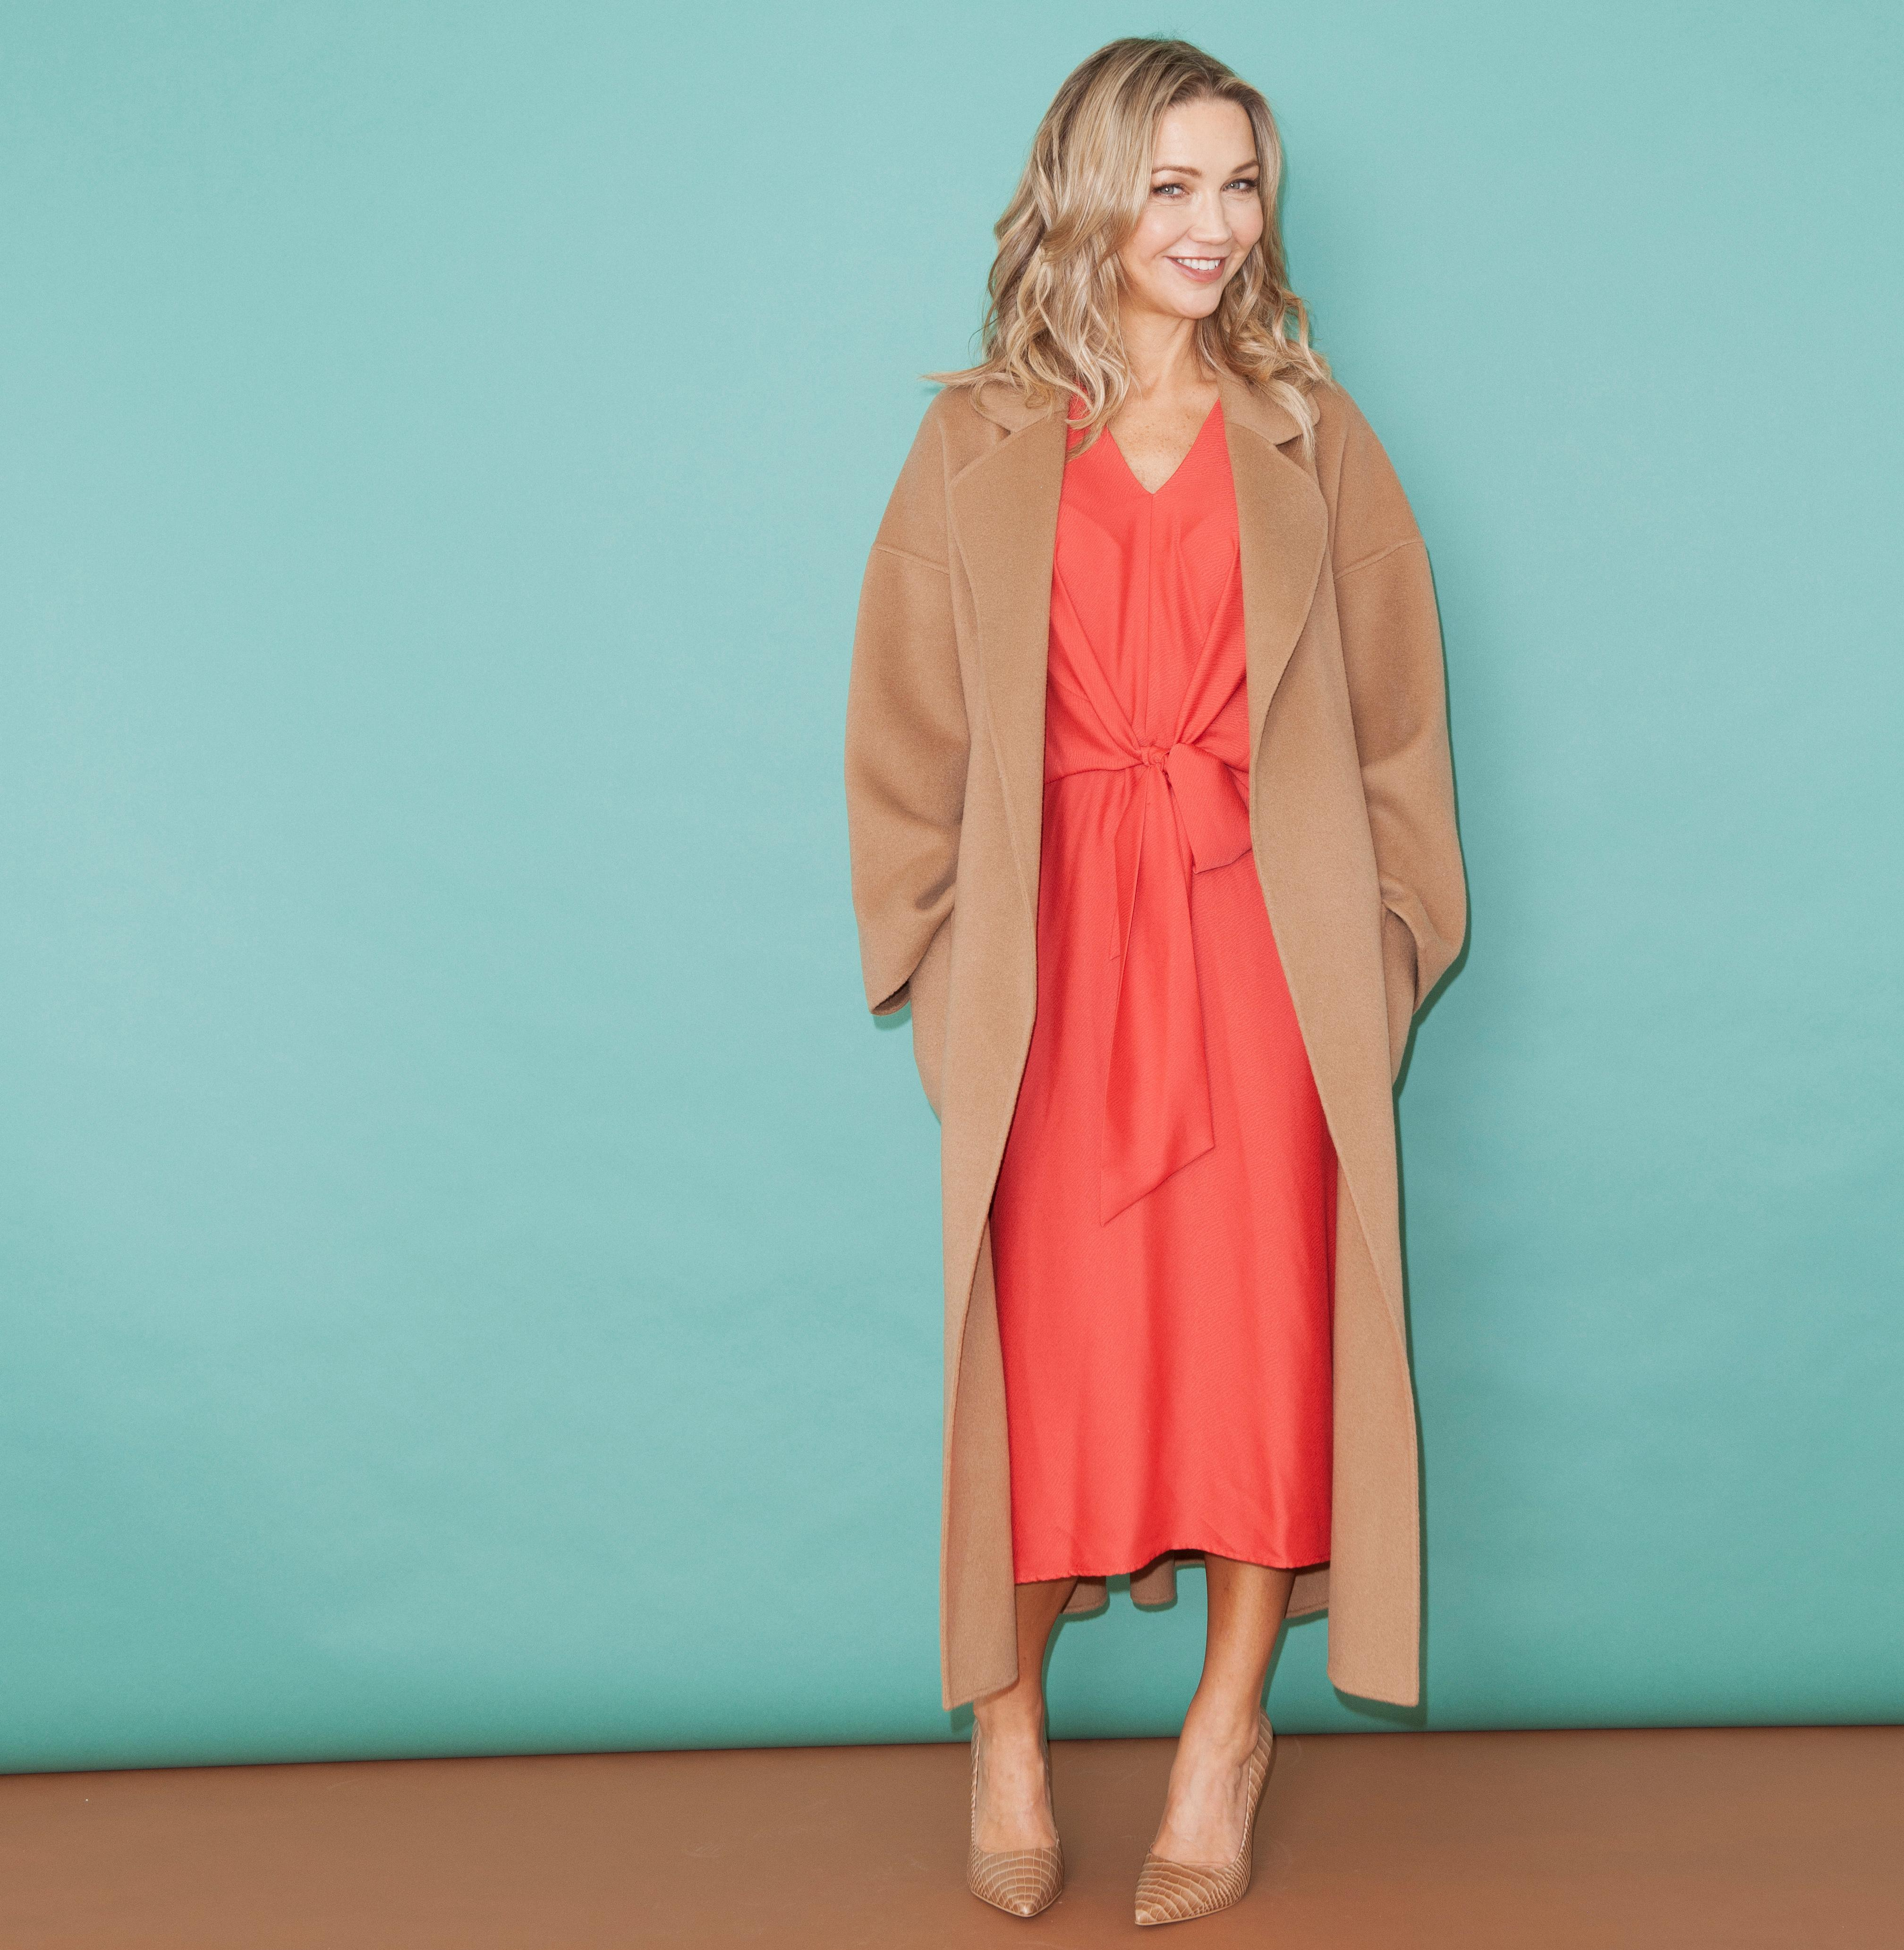 How to wear a big easy coat